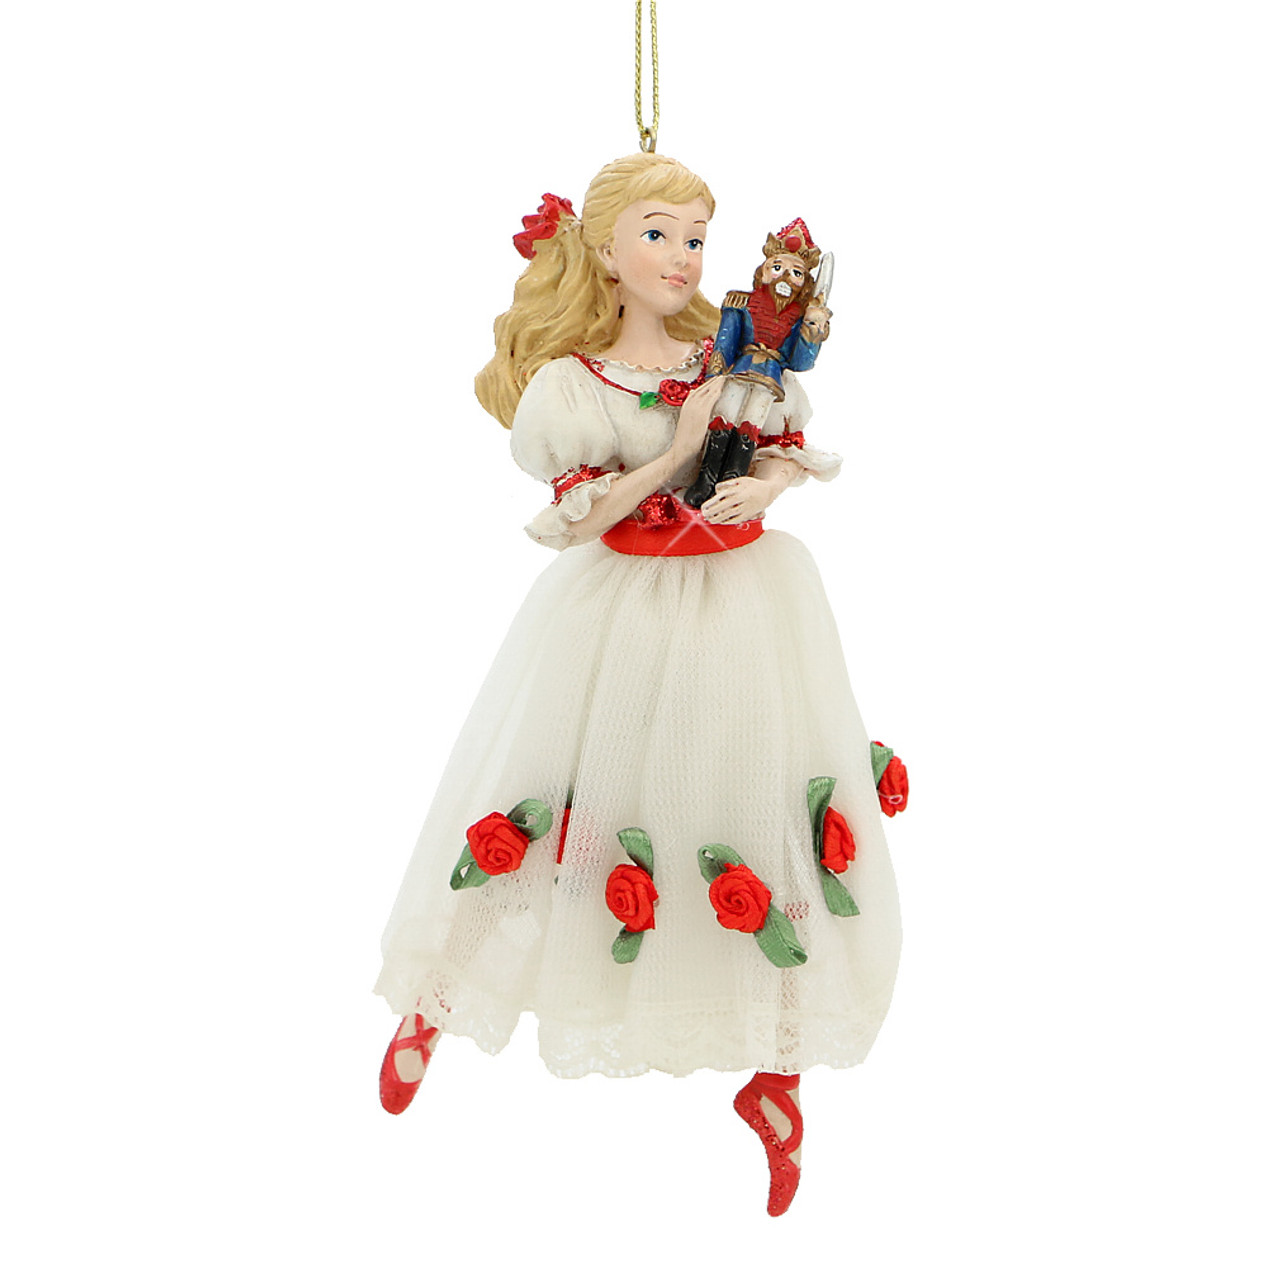 clara and nutcracker christmas tree ornament - Nutcracker Christmas Ornaments